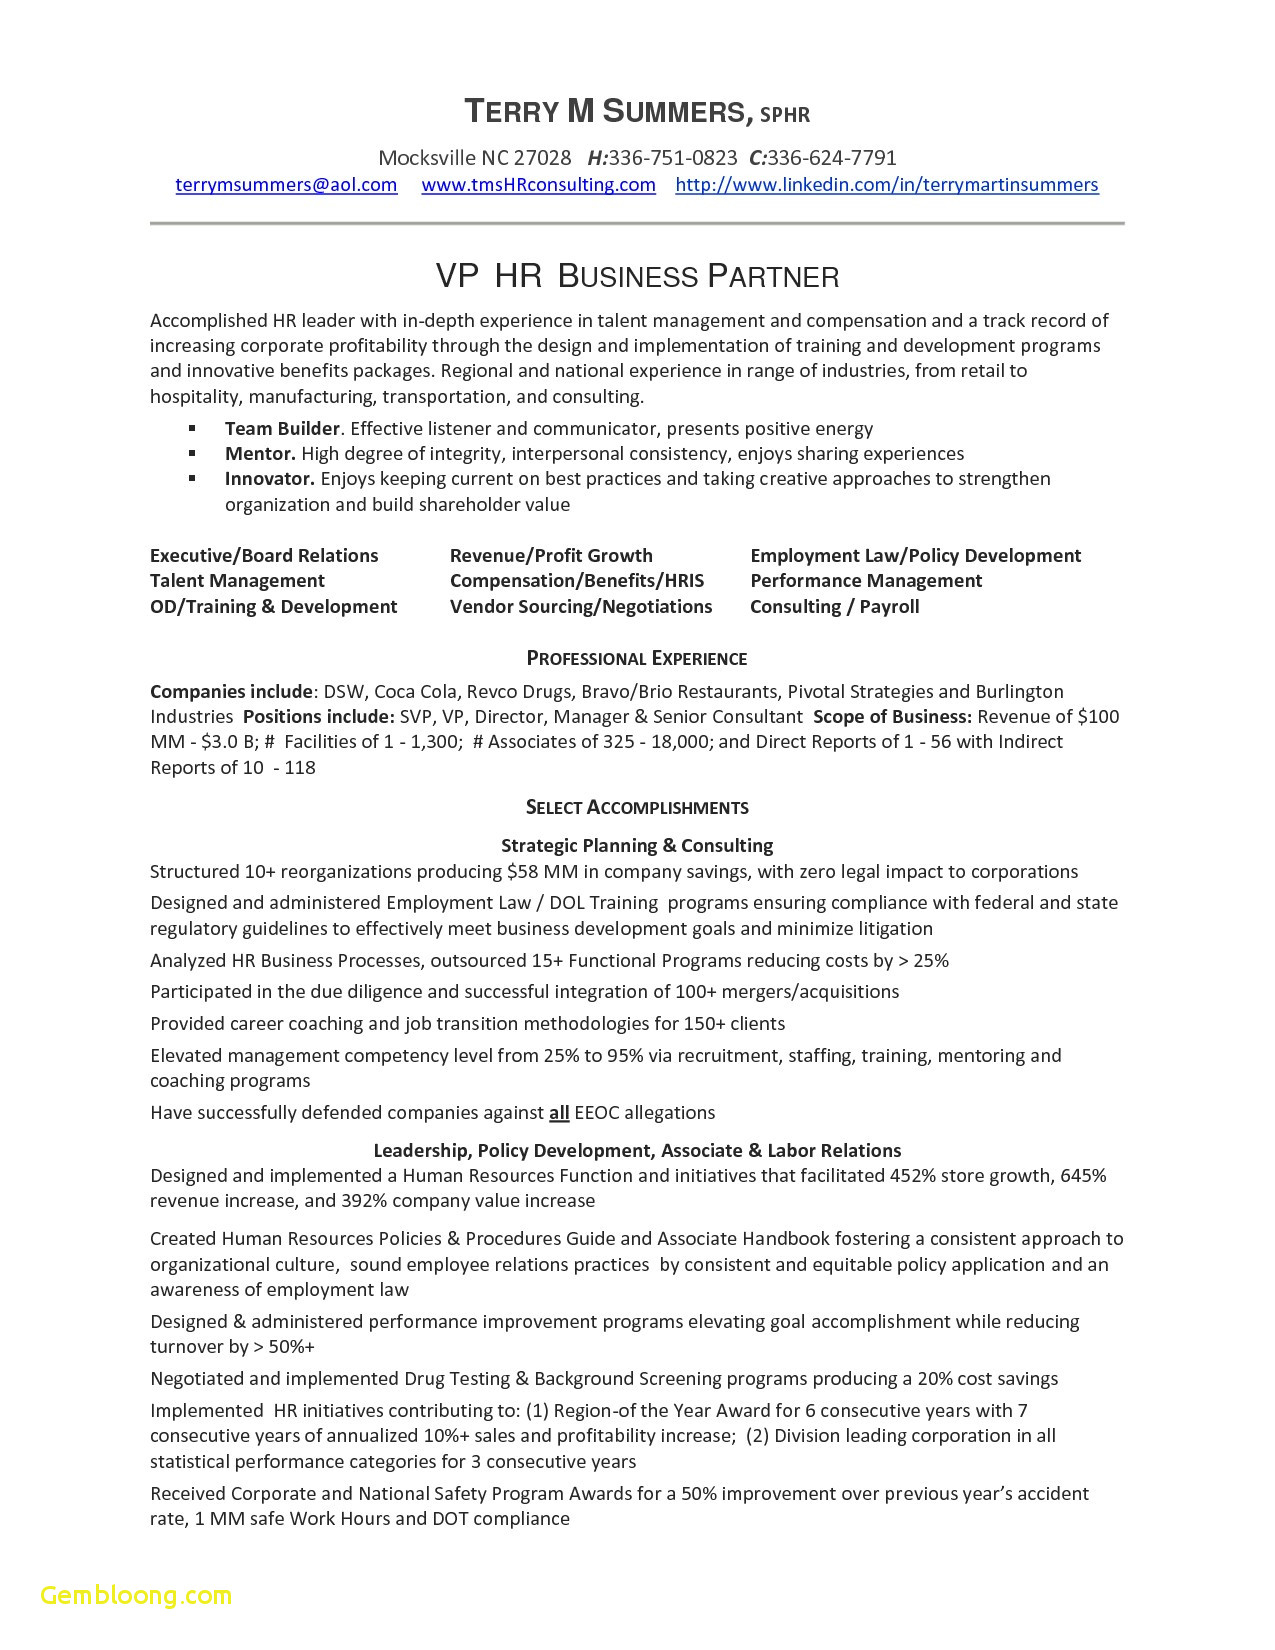 Cover Letter Template for Human Resources - Human Resources Sample Resume Download Cover Letter Template Hr Copy